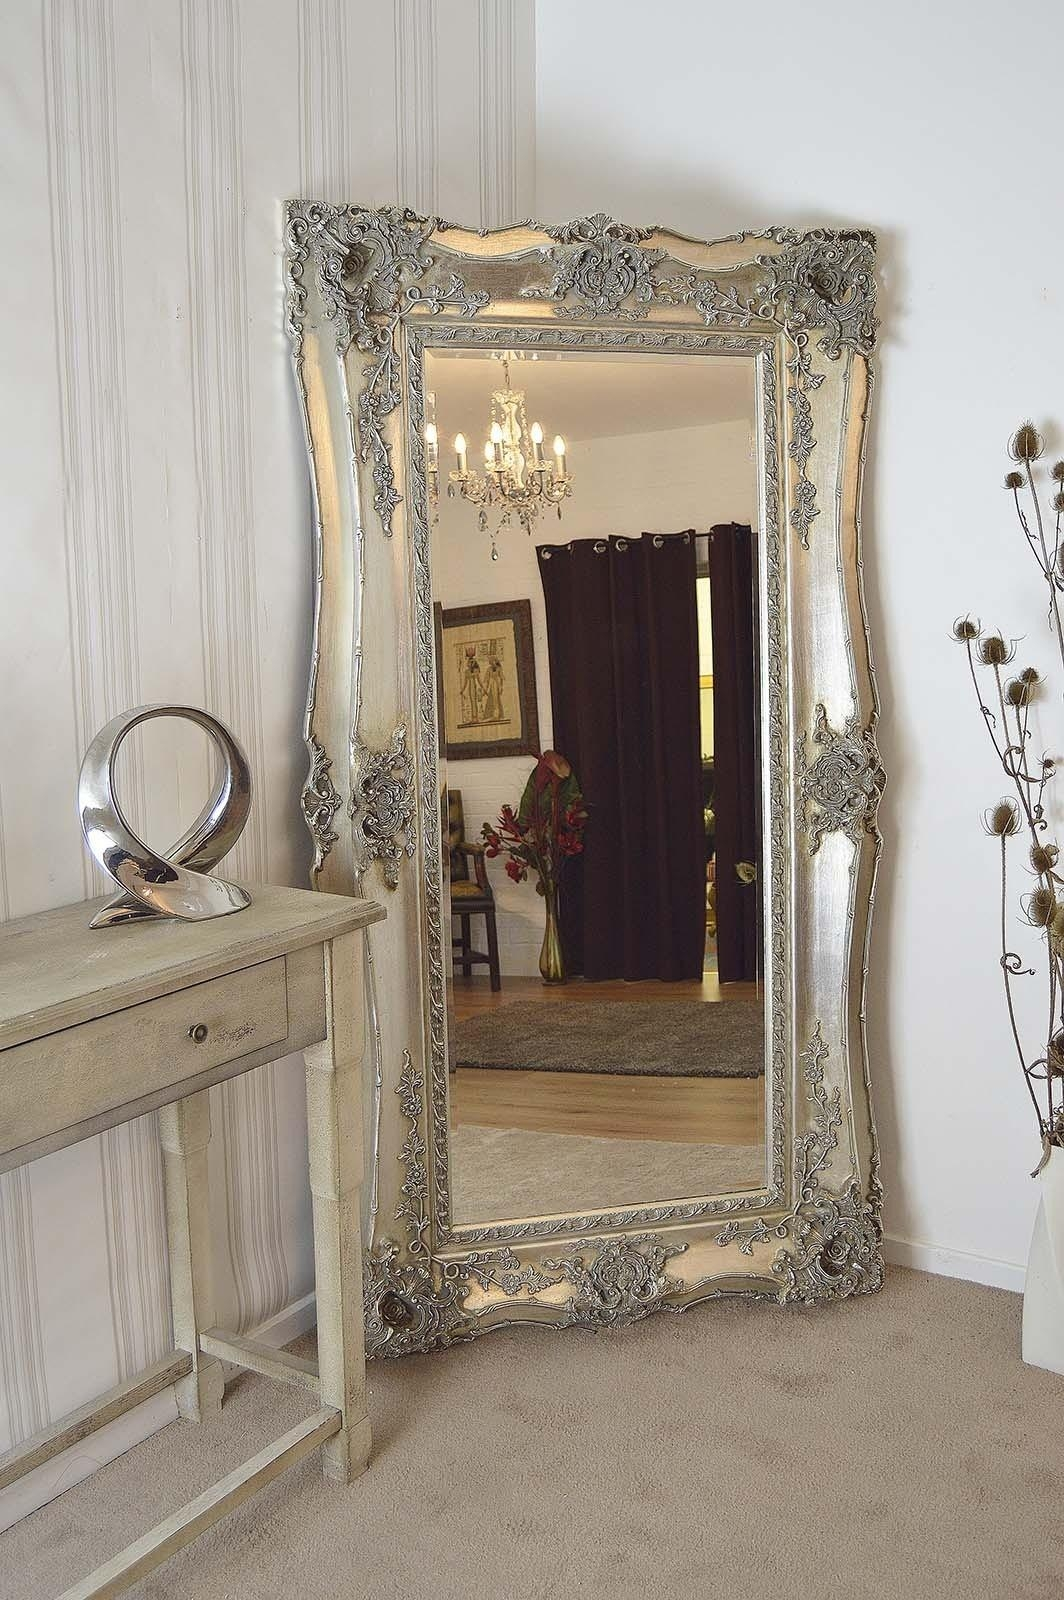 Homeware: Cheap Floor Mirrors | Large Framed Floor Mirrors | Floor Intended For Framed Floor Mirrors (View 8 of 20)